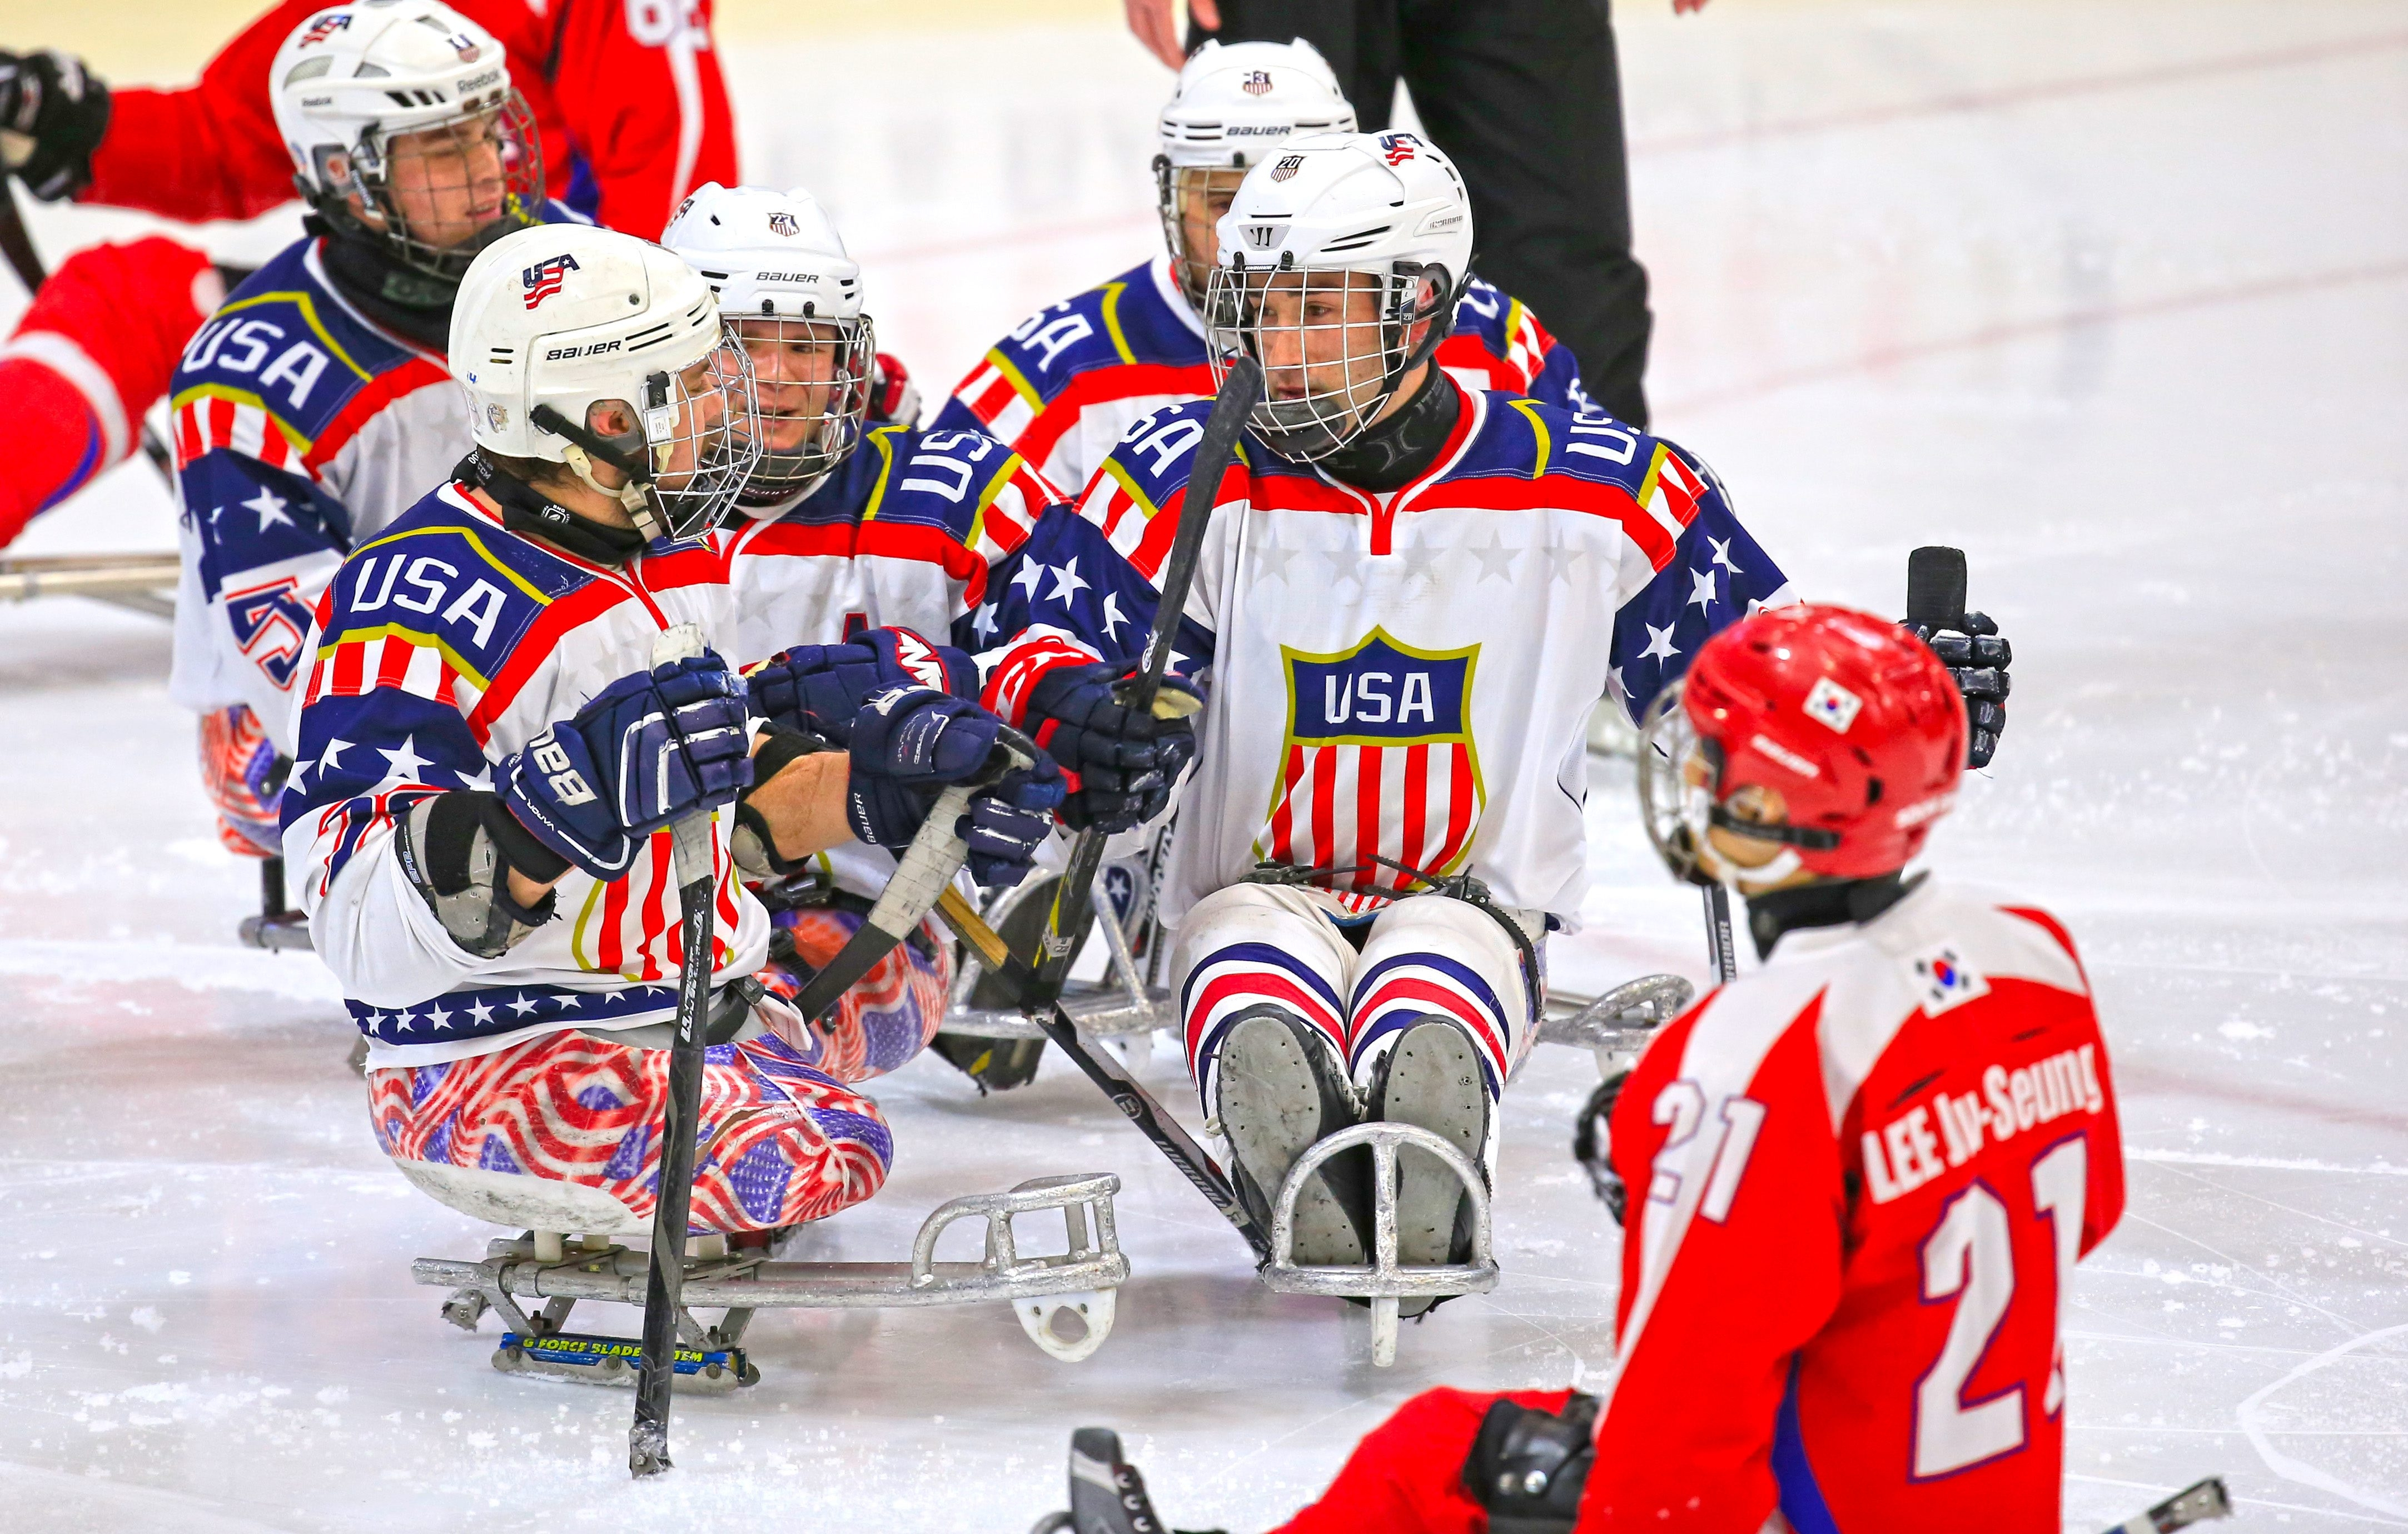 Team USA's Adam Page, right, celebrates his first goal of the game with Paul Schaus, front left, during the second period of a win over Korea.